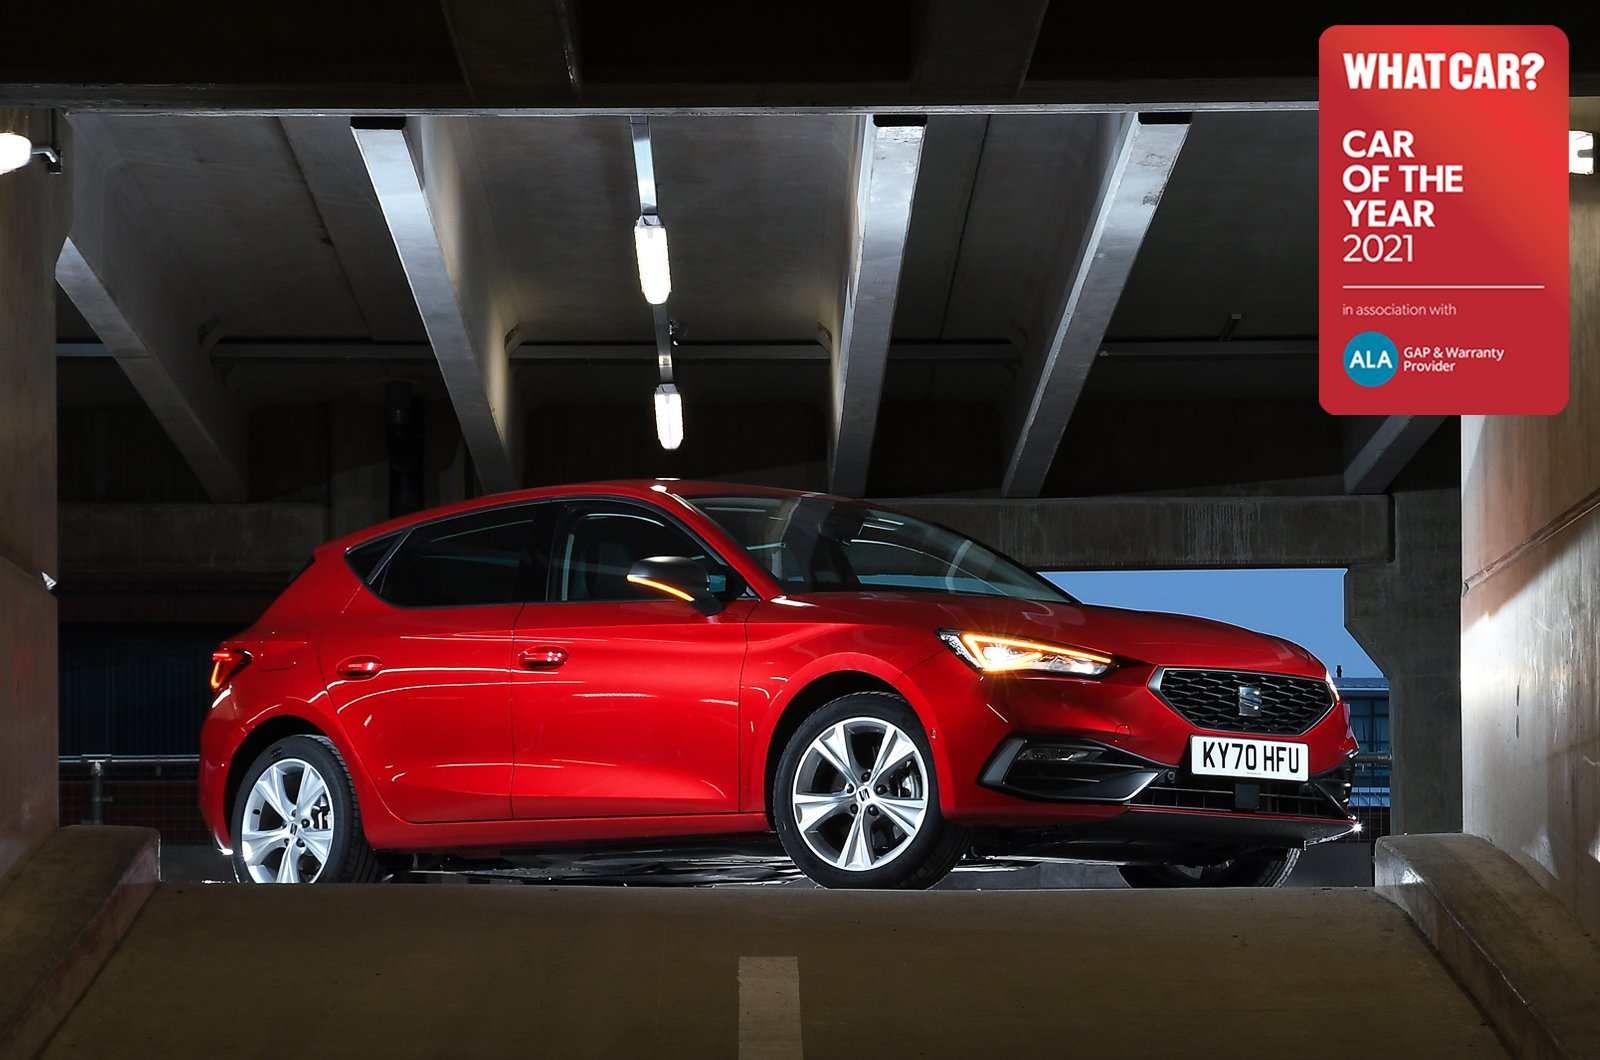 Family Car of the Year 2021 - Seat Leon